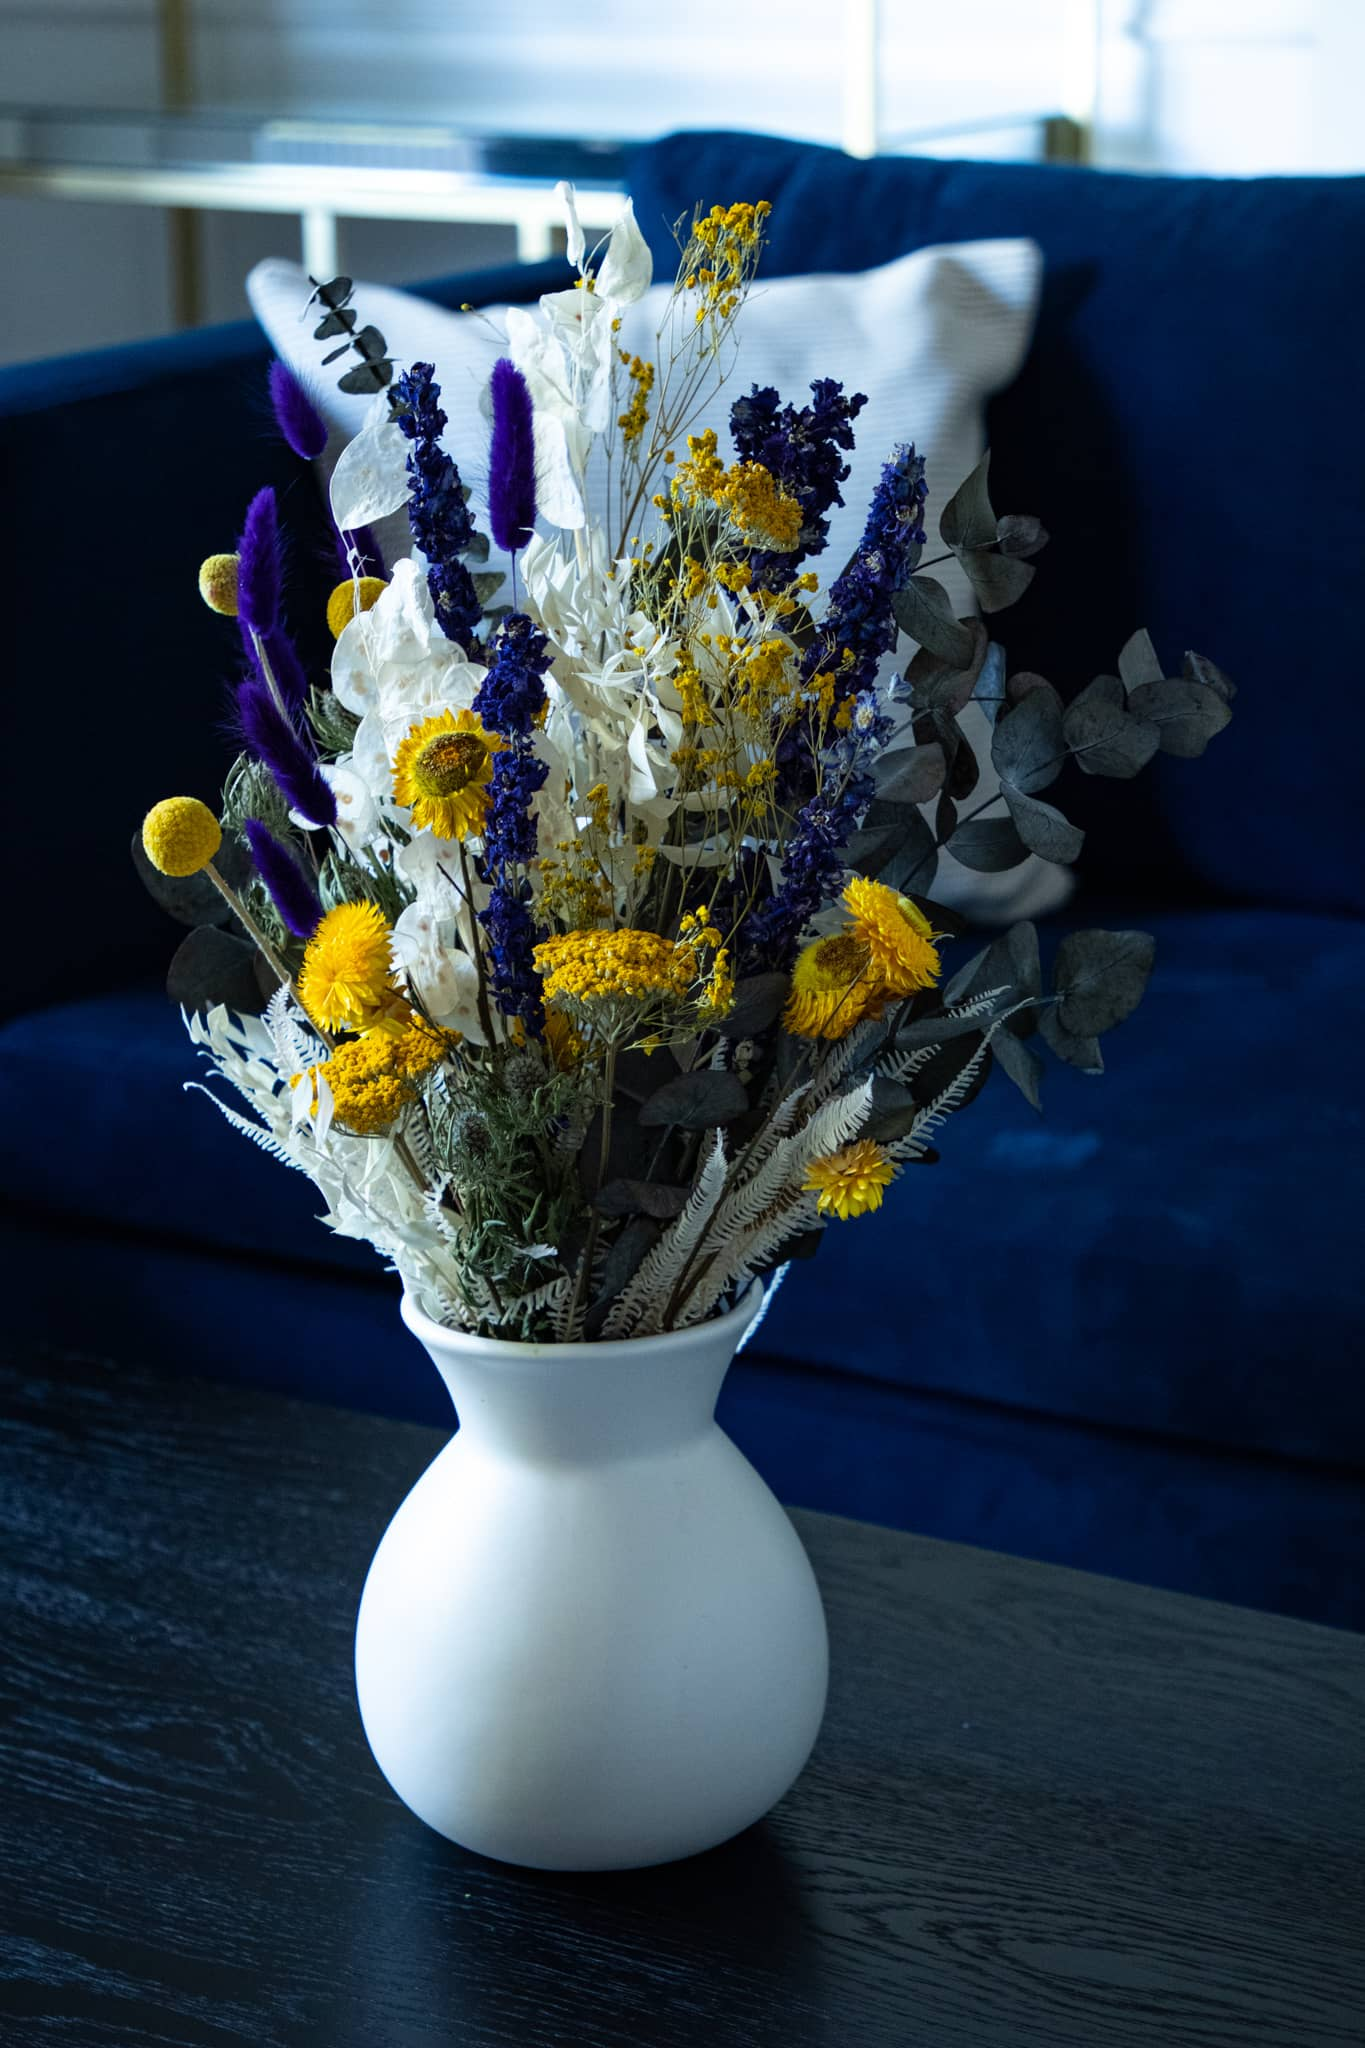 same-day Flowers for delivery in London: bespoke Dried Flower Arrangements and Bouquets